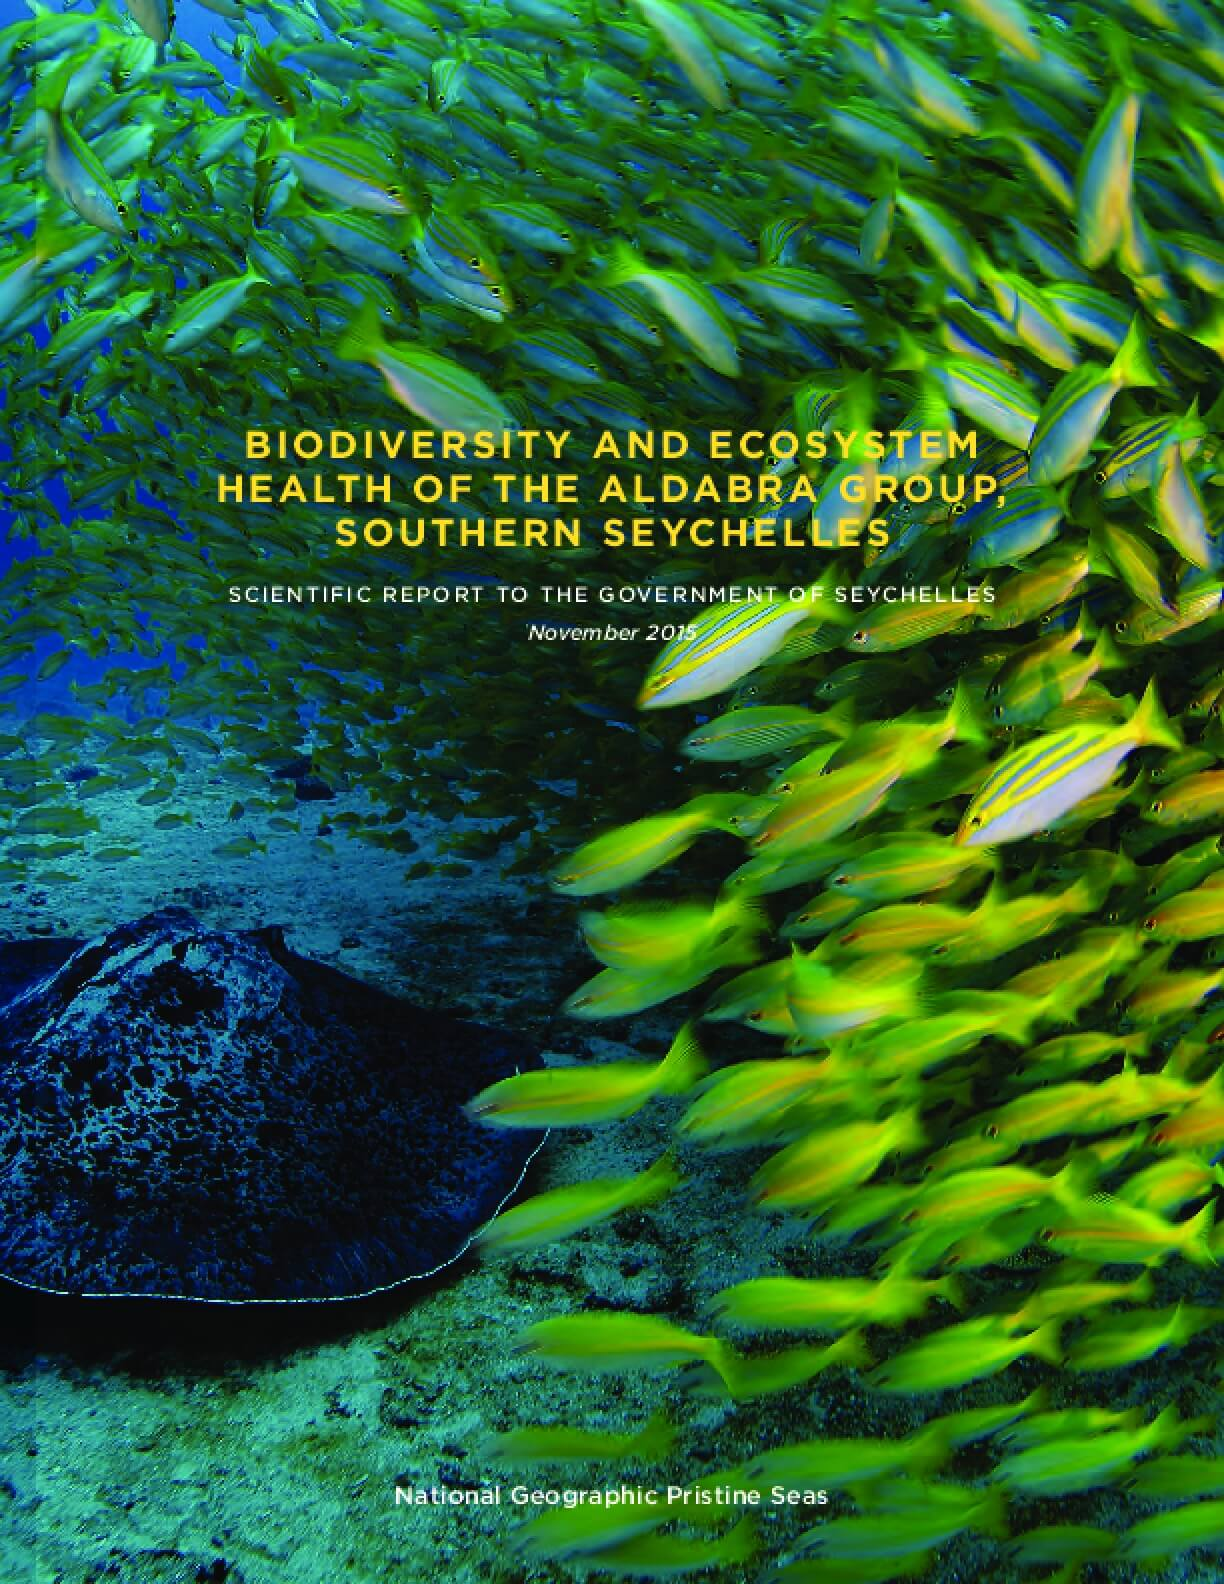 Biodiversity and Ecosystem Health of the Aldabra Group, Southern Seychelles: Scientific Report to the Government of Seychelles.